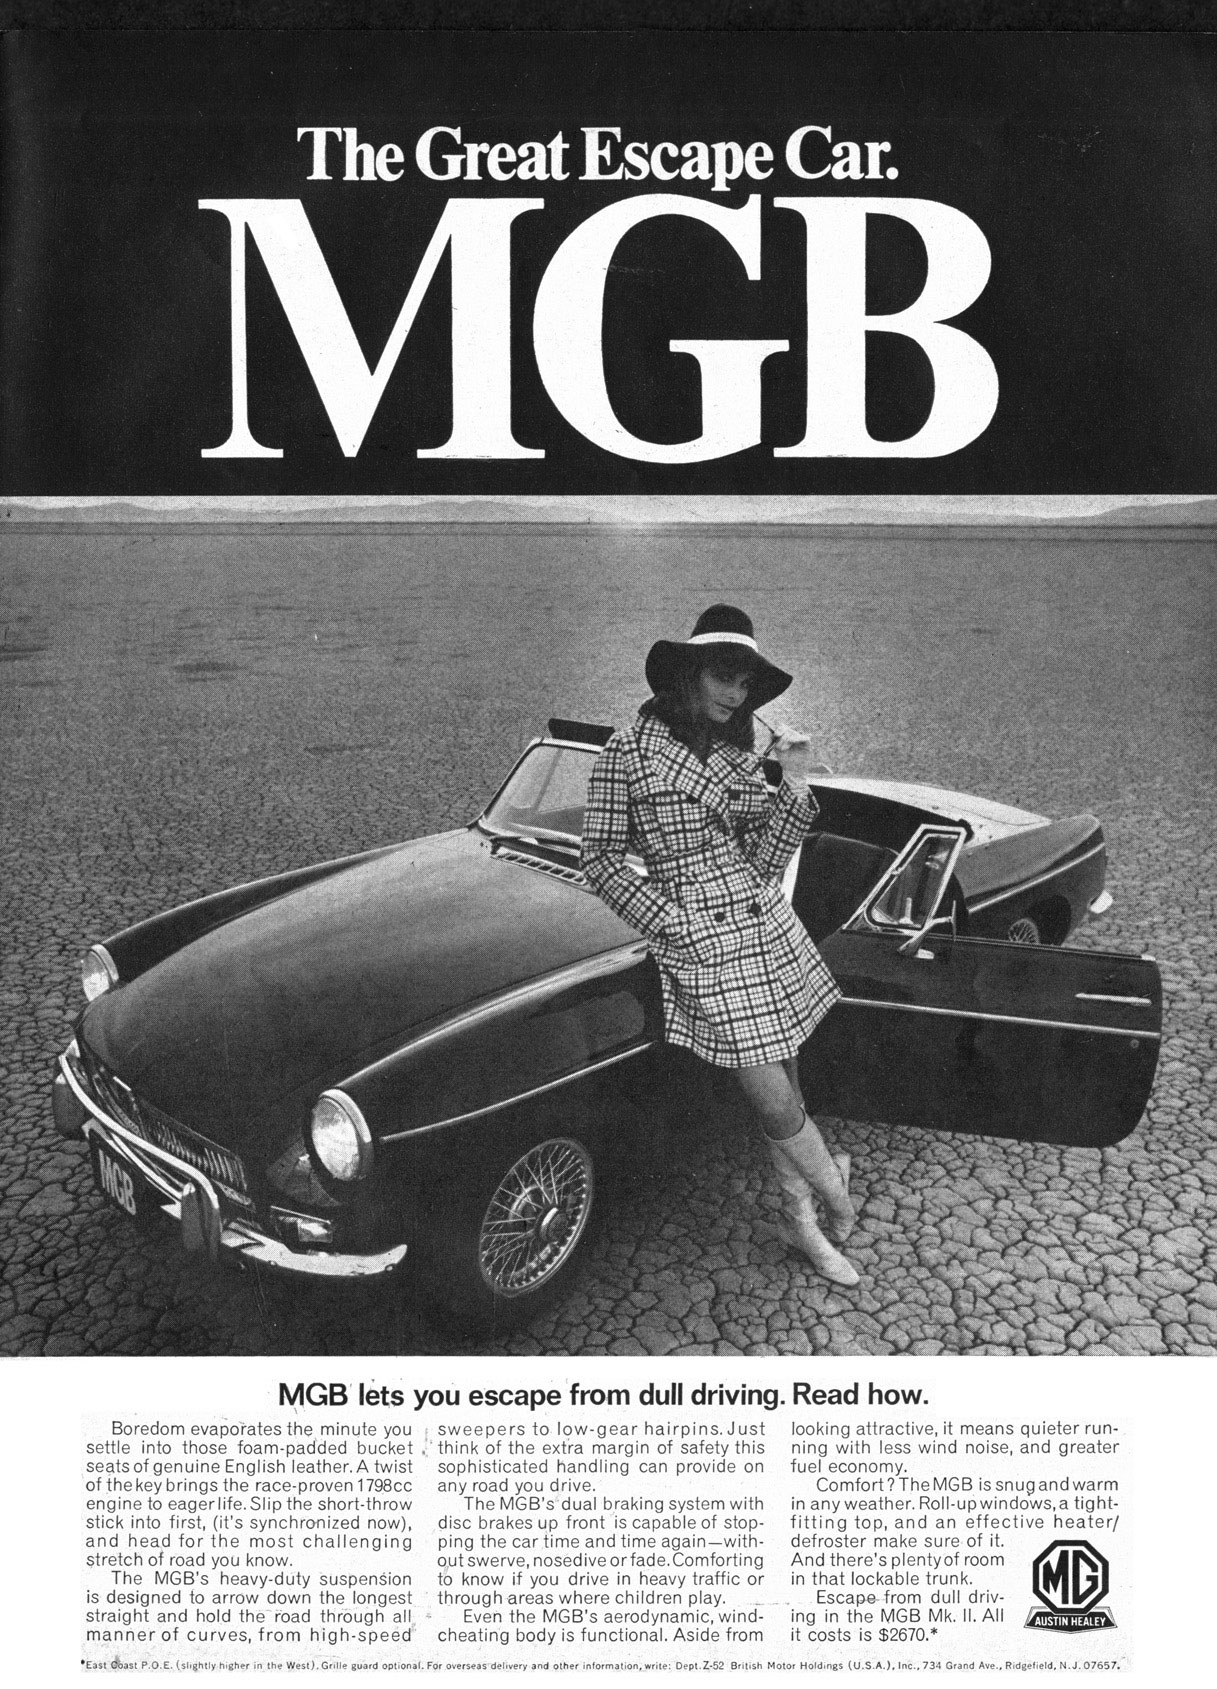 The Great Escape Car.    MGB lets you escape from dull driving. Read how.  Boredom evaporates the minute you settle into those foam-padded bucket seats of genuine English leather. A twist of the key brings the race-proven 1798cc engine to eager life.Slip the short-throw stick into first, (it's synchronized now), and head for the most challenging stretch of road you know. The MGB's heavy-duty suspenion is designed to arrow down the longest straight and hold the road through all manner of curves, from high-speed  sweepers to low-gear hairpins.Just think of the extra margin of safety this sophisticated handling can provide on any road you drive. The MGB's dual braking system with disc brakes up front is capable of stop-ping the car time and time again—with-out swerve, nosedive or fade.Comforting to know if you drive in heavy traffic or through areas where children play. Even the MGB's aerodynamic, wind-cheating body is functional. Aside from  looking attractive, it means quieter run-ning with less wind noise, and greater fuel economy. Comfort ? The MGB is snug and warm in any weather. Roll-up windows,a tight-fitting top, and an effective heater/ defroster make sure of it. And there's plentyof room in that lockable trunk. Escape from dull driv-ing in the MGB Mk. II. All it costs is $2670.*